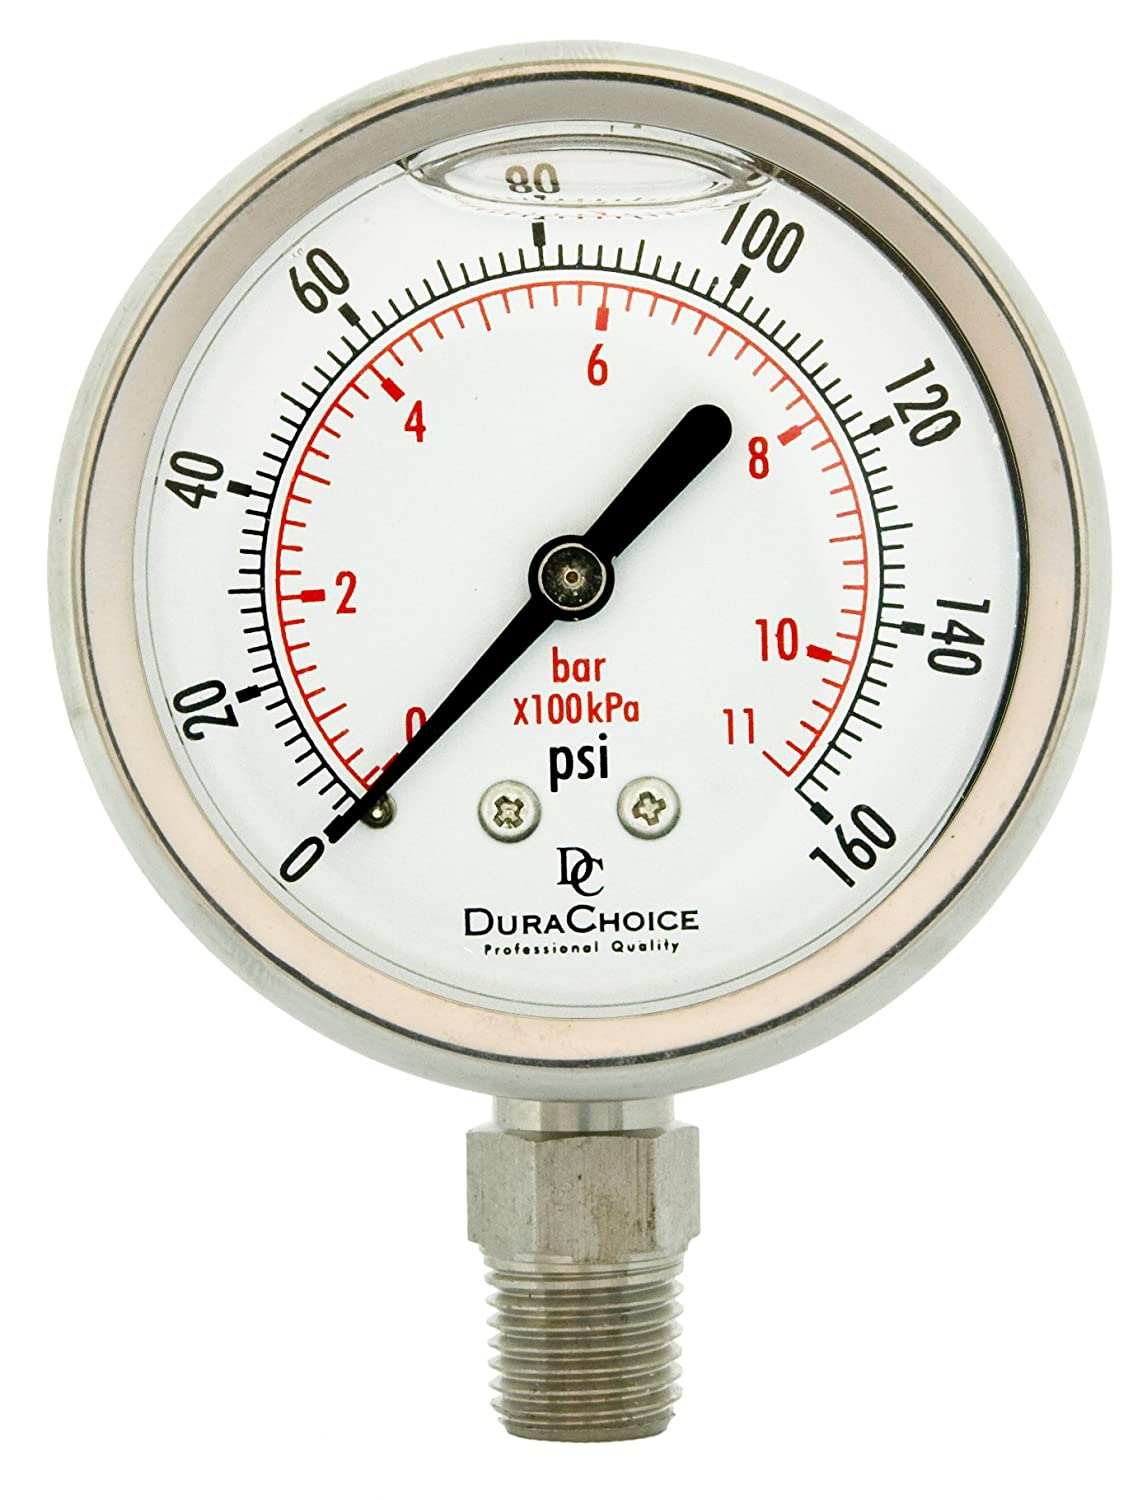 2-1/2' All Stainless Steel Oil Filled Pressure Gauge - 1/4' NPT Lower Mount 160PSI DuraChoice PS254L-160